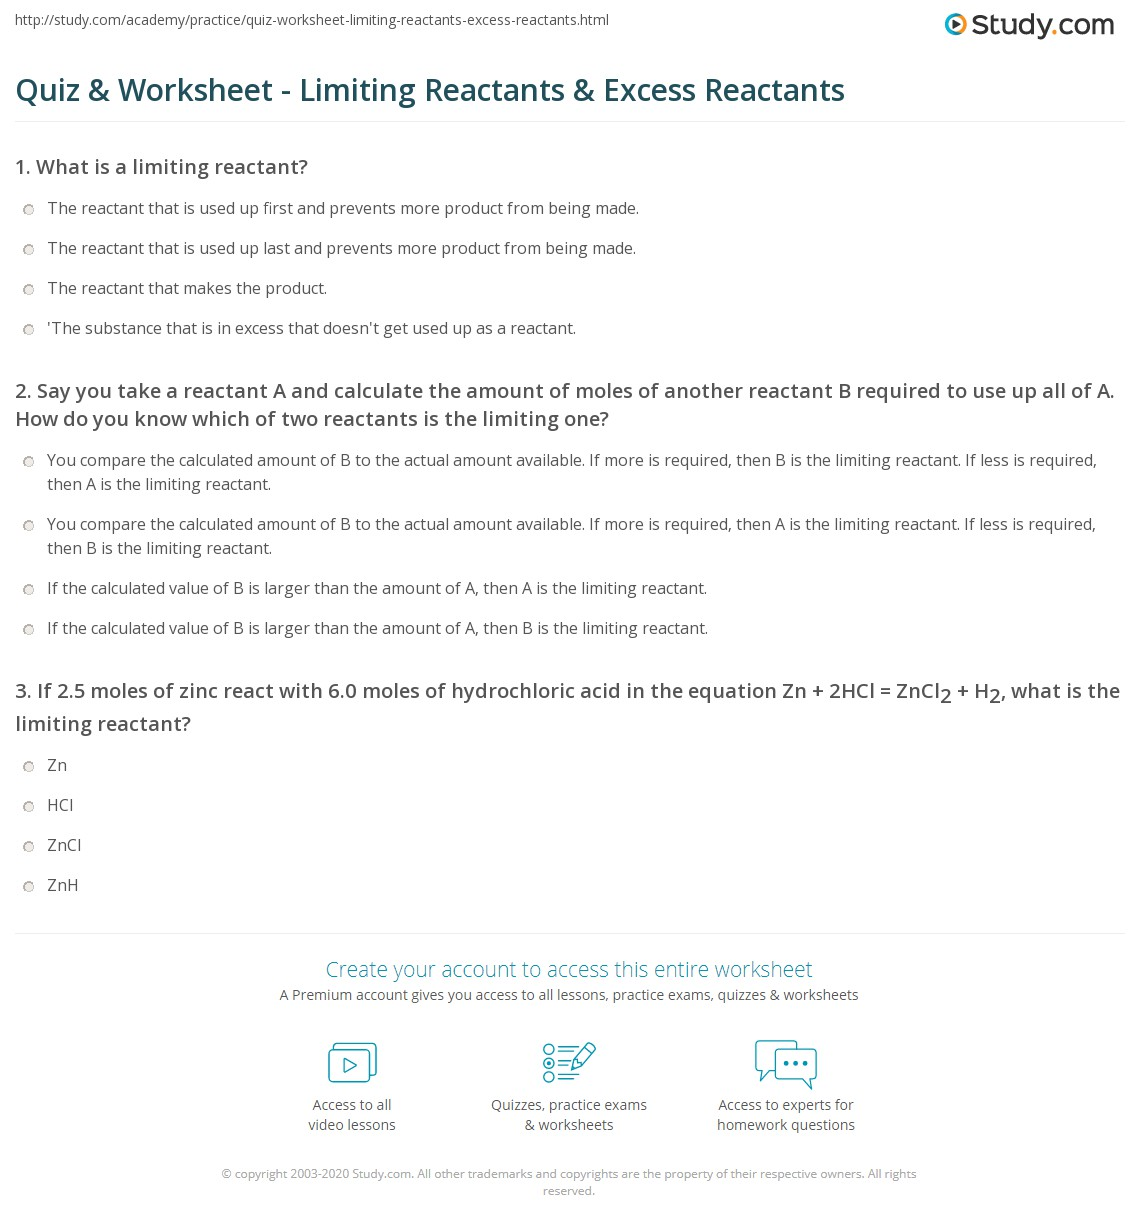 Quiz & Worksheet - Limiting Reactants & Excess Reactants | Study.com